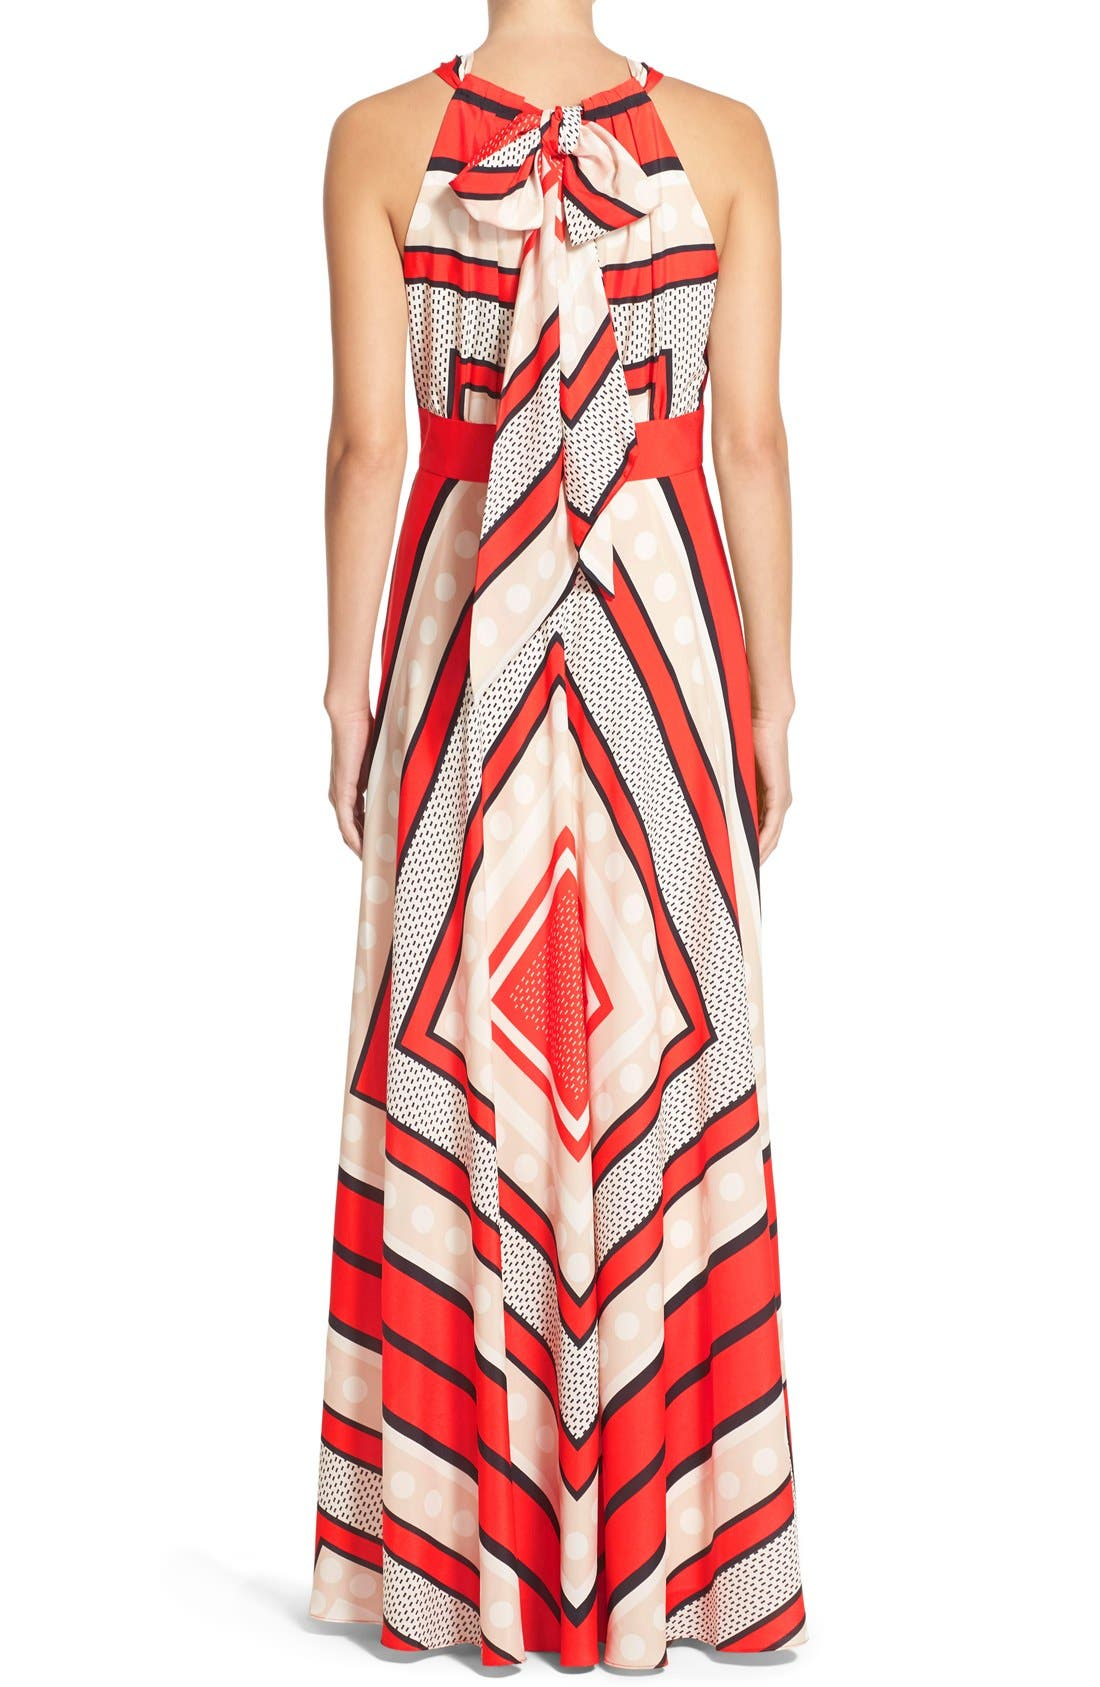 Alternate Image 2  - Eliza J Scarf Print Crêpe de Chine Fit & Flare Maxi Dress (Regular & Petite)